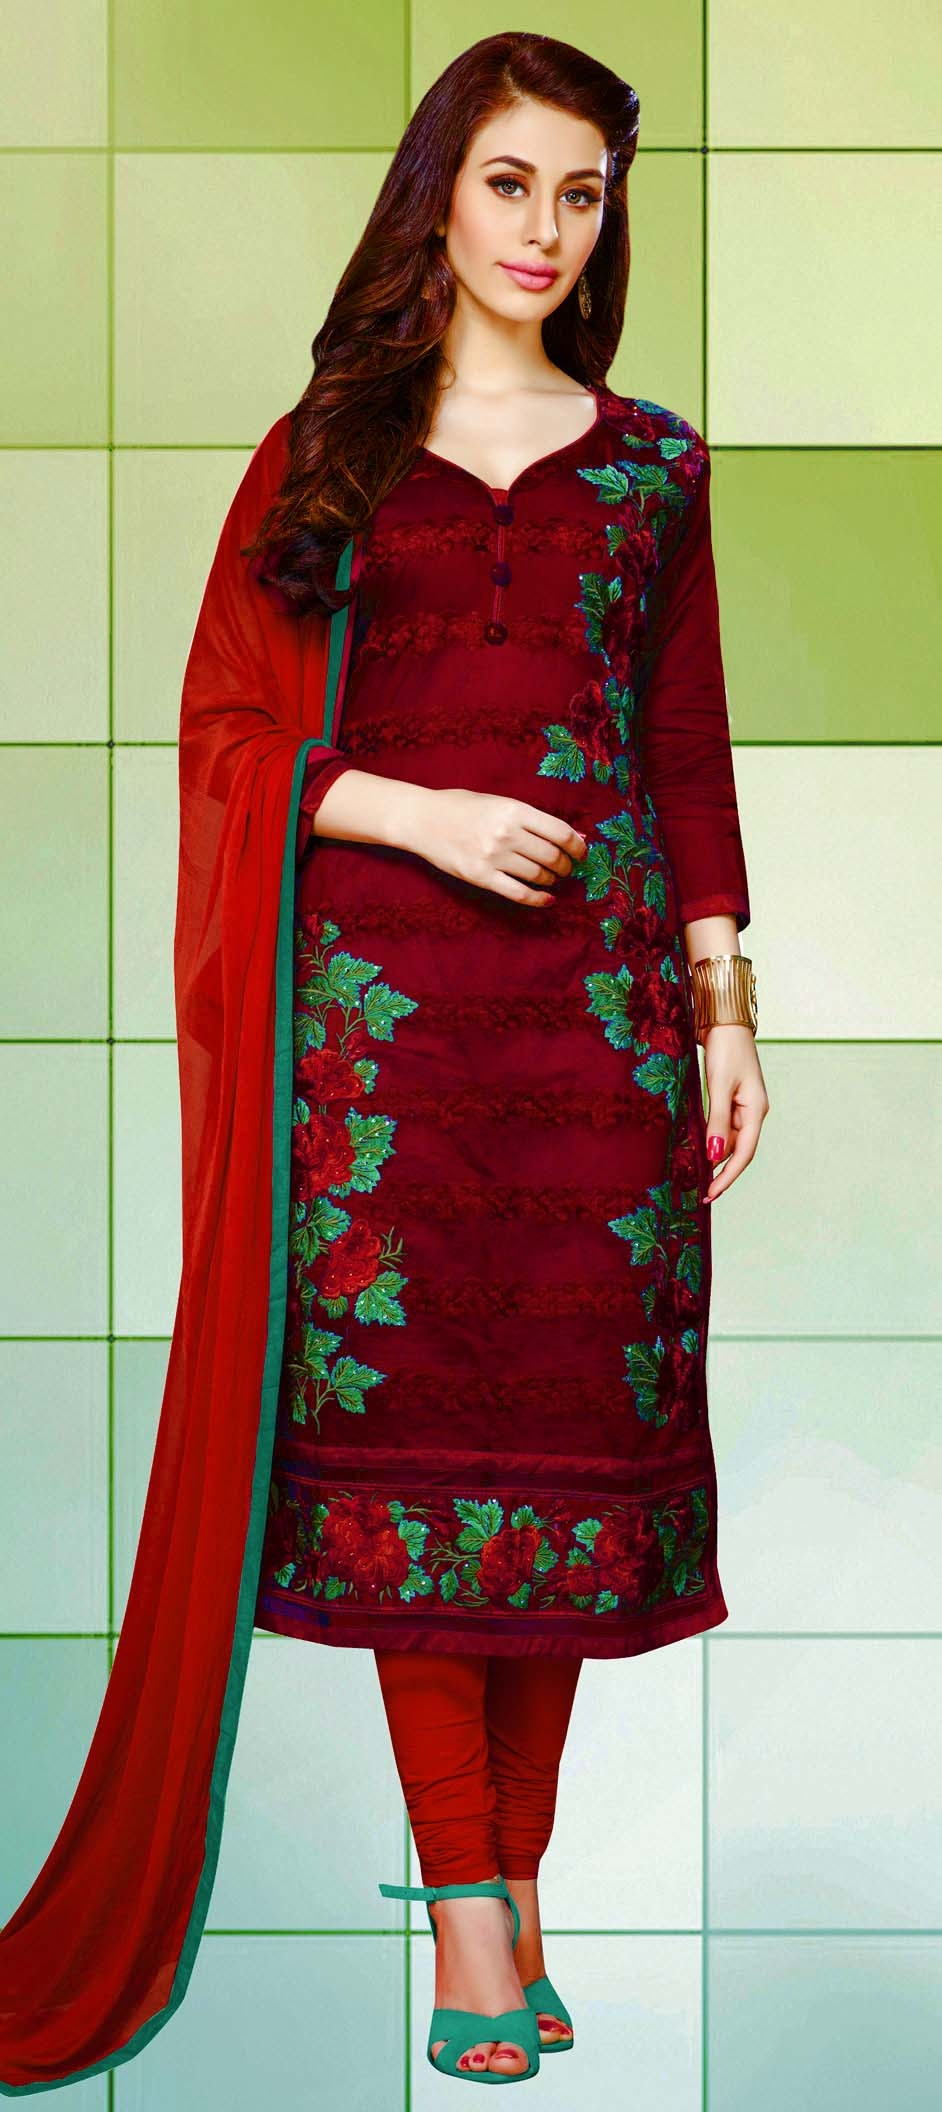 459838: Red and Maroon color family unstitched Cotton Salwar Kameez ...